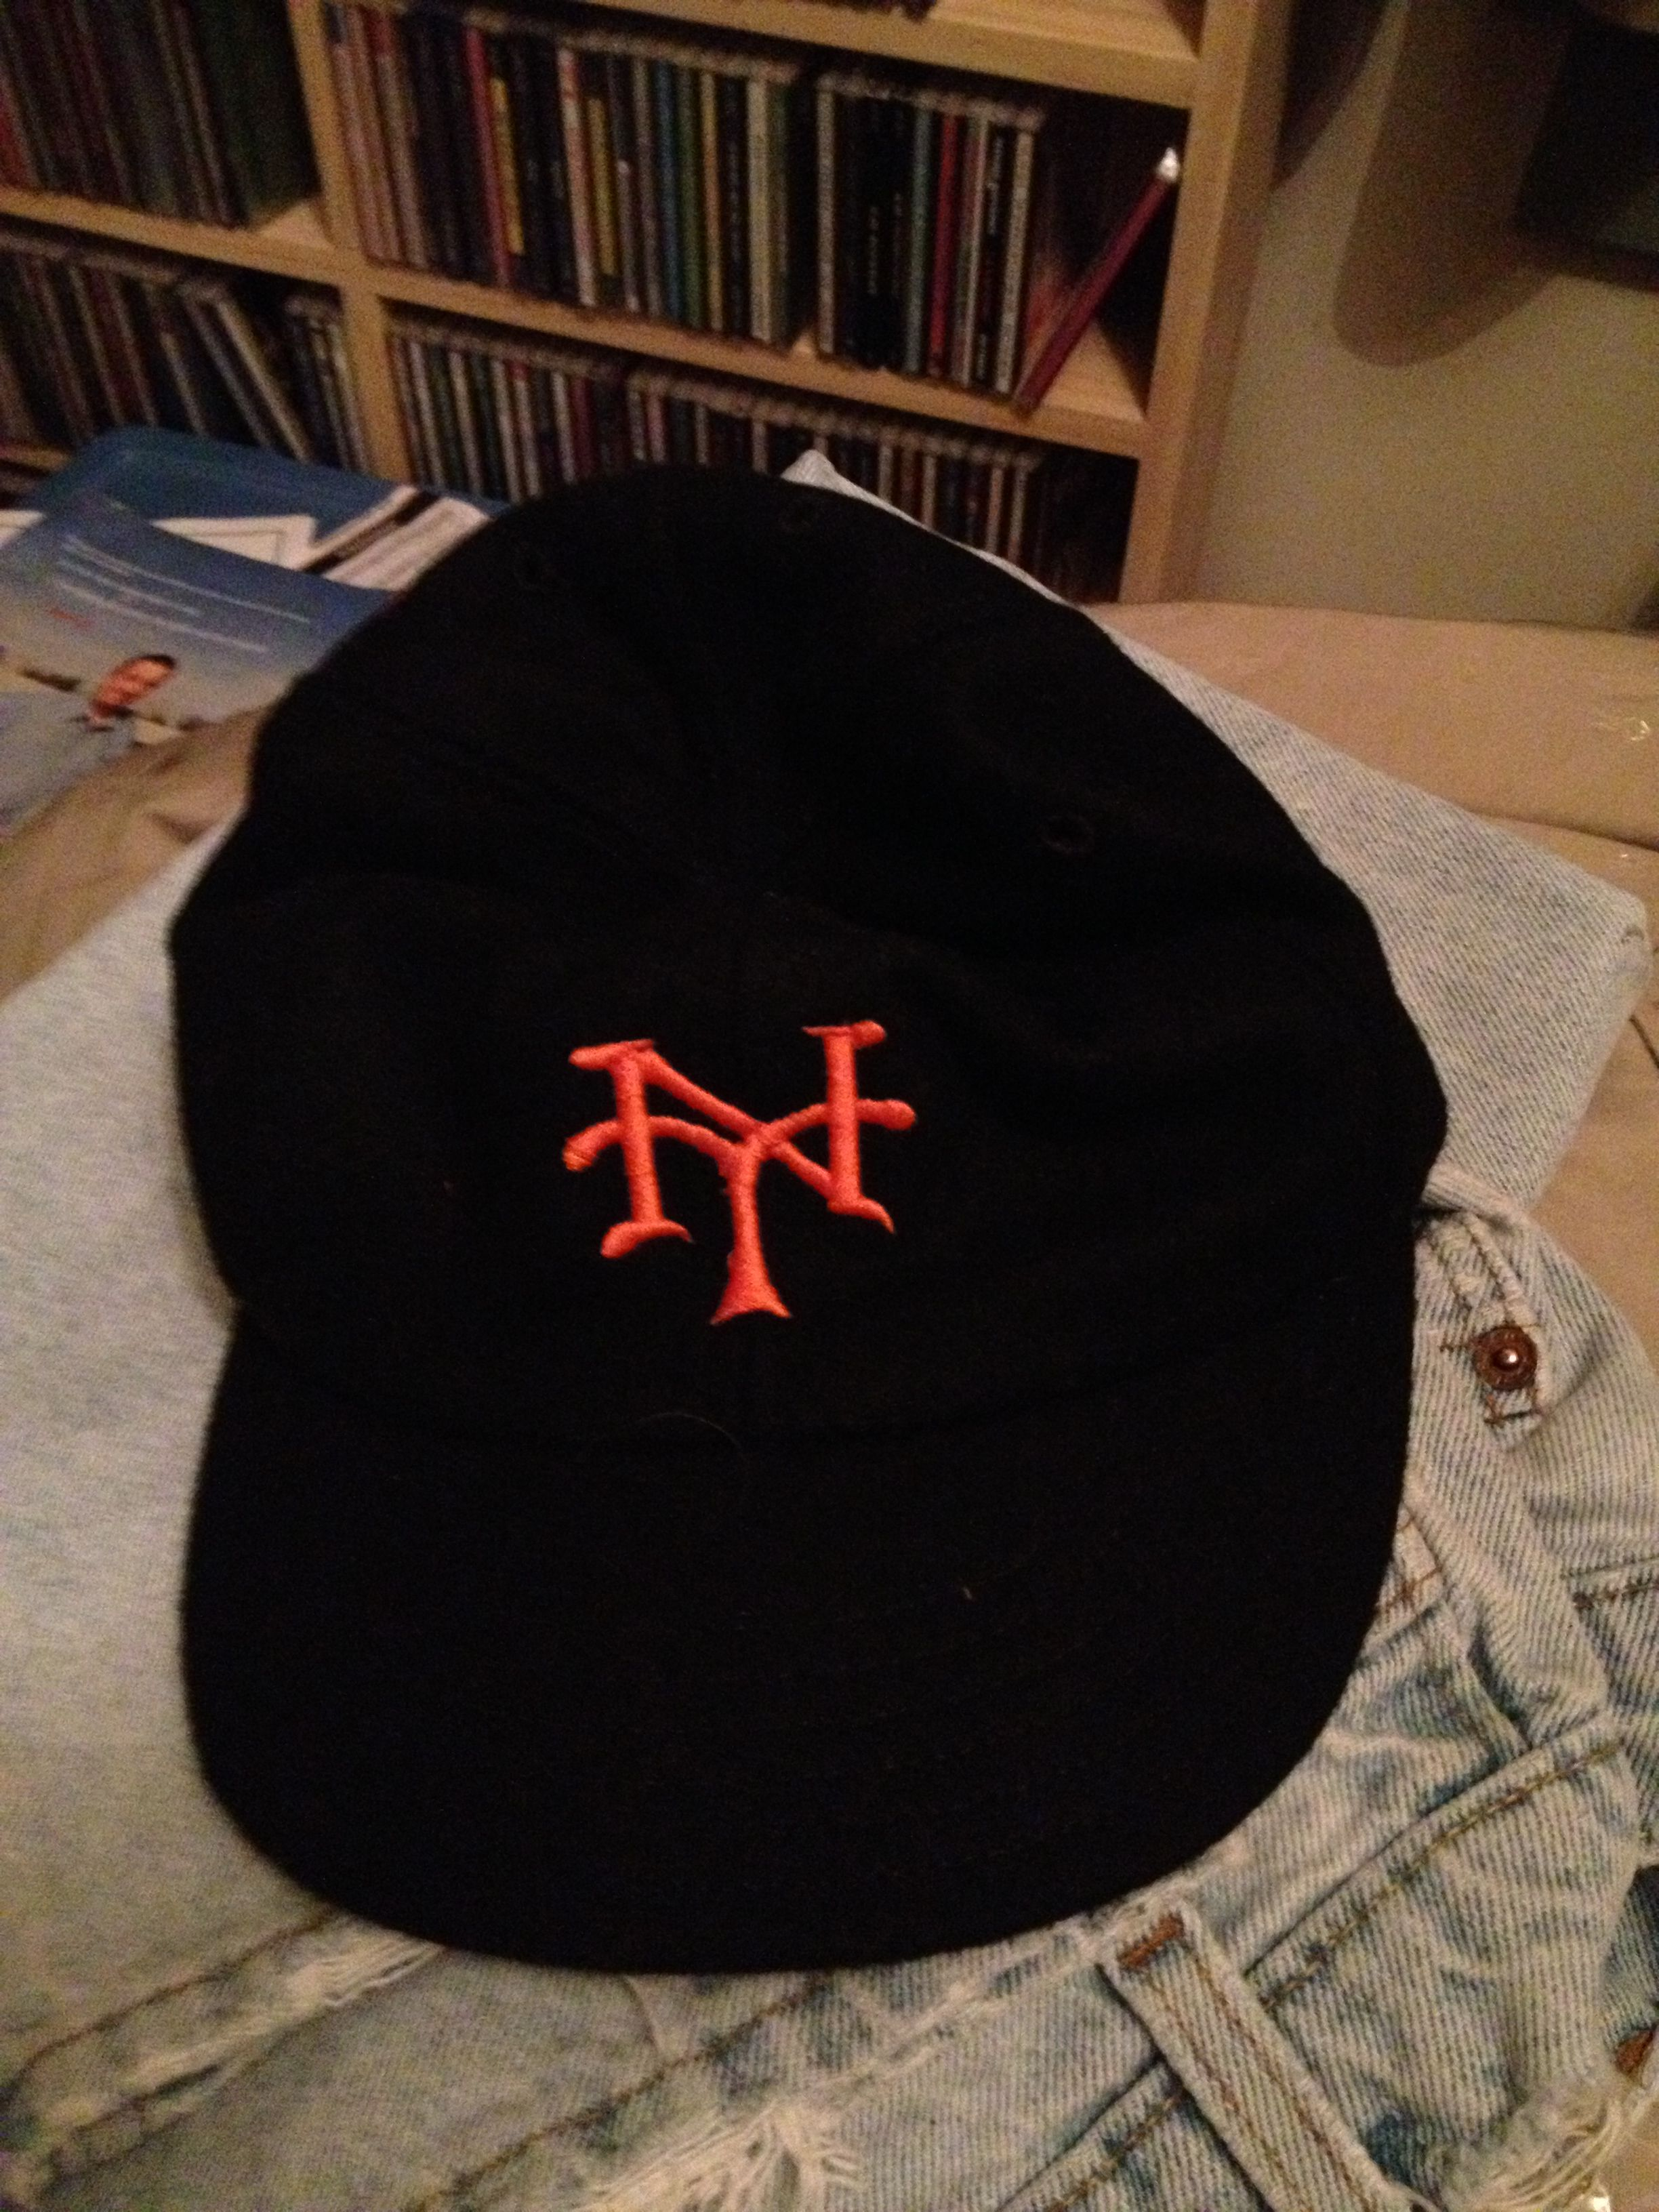 d34ad4039a4 1933 New York Giants baseball cap made for me by Cooperstown Ball ...